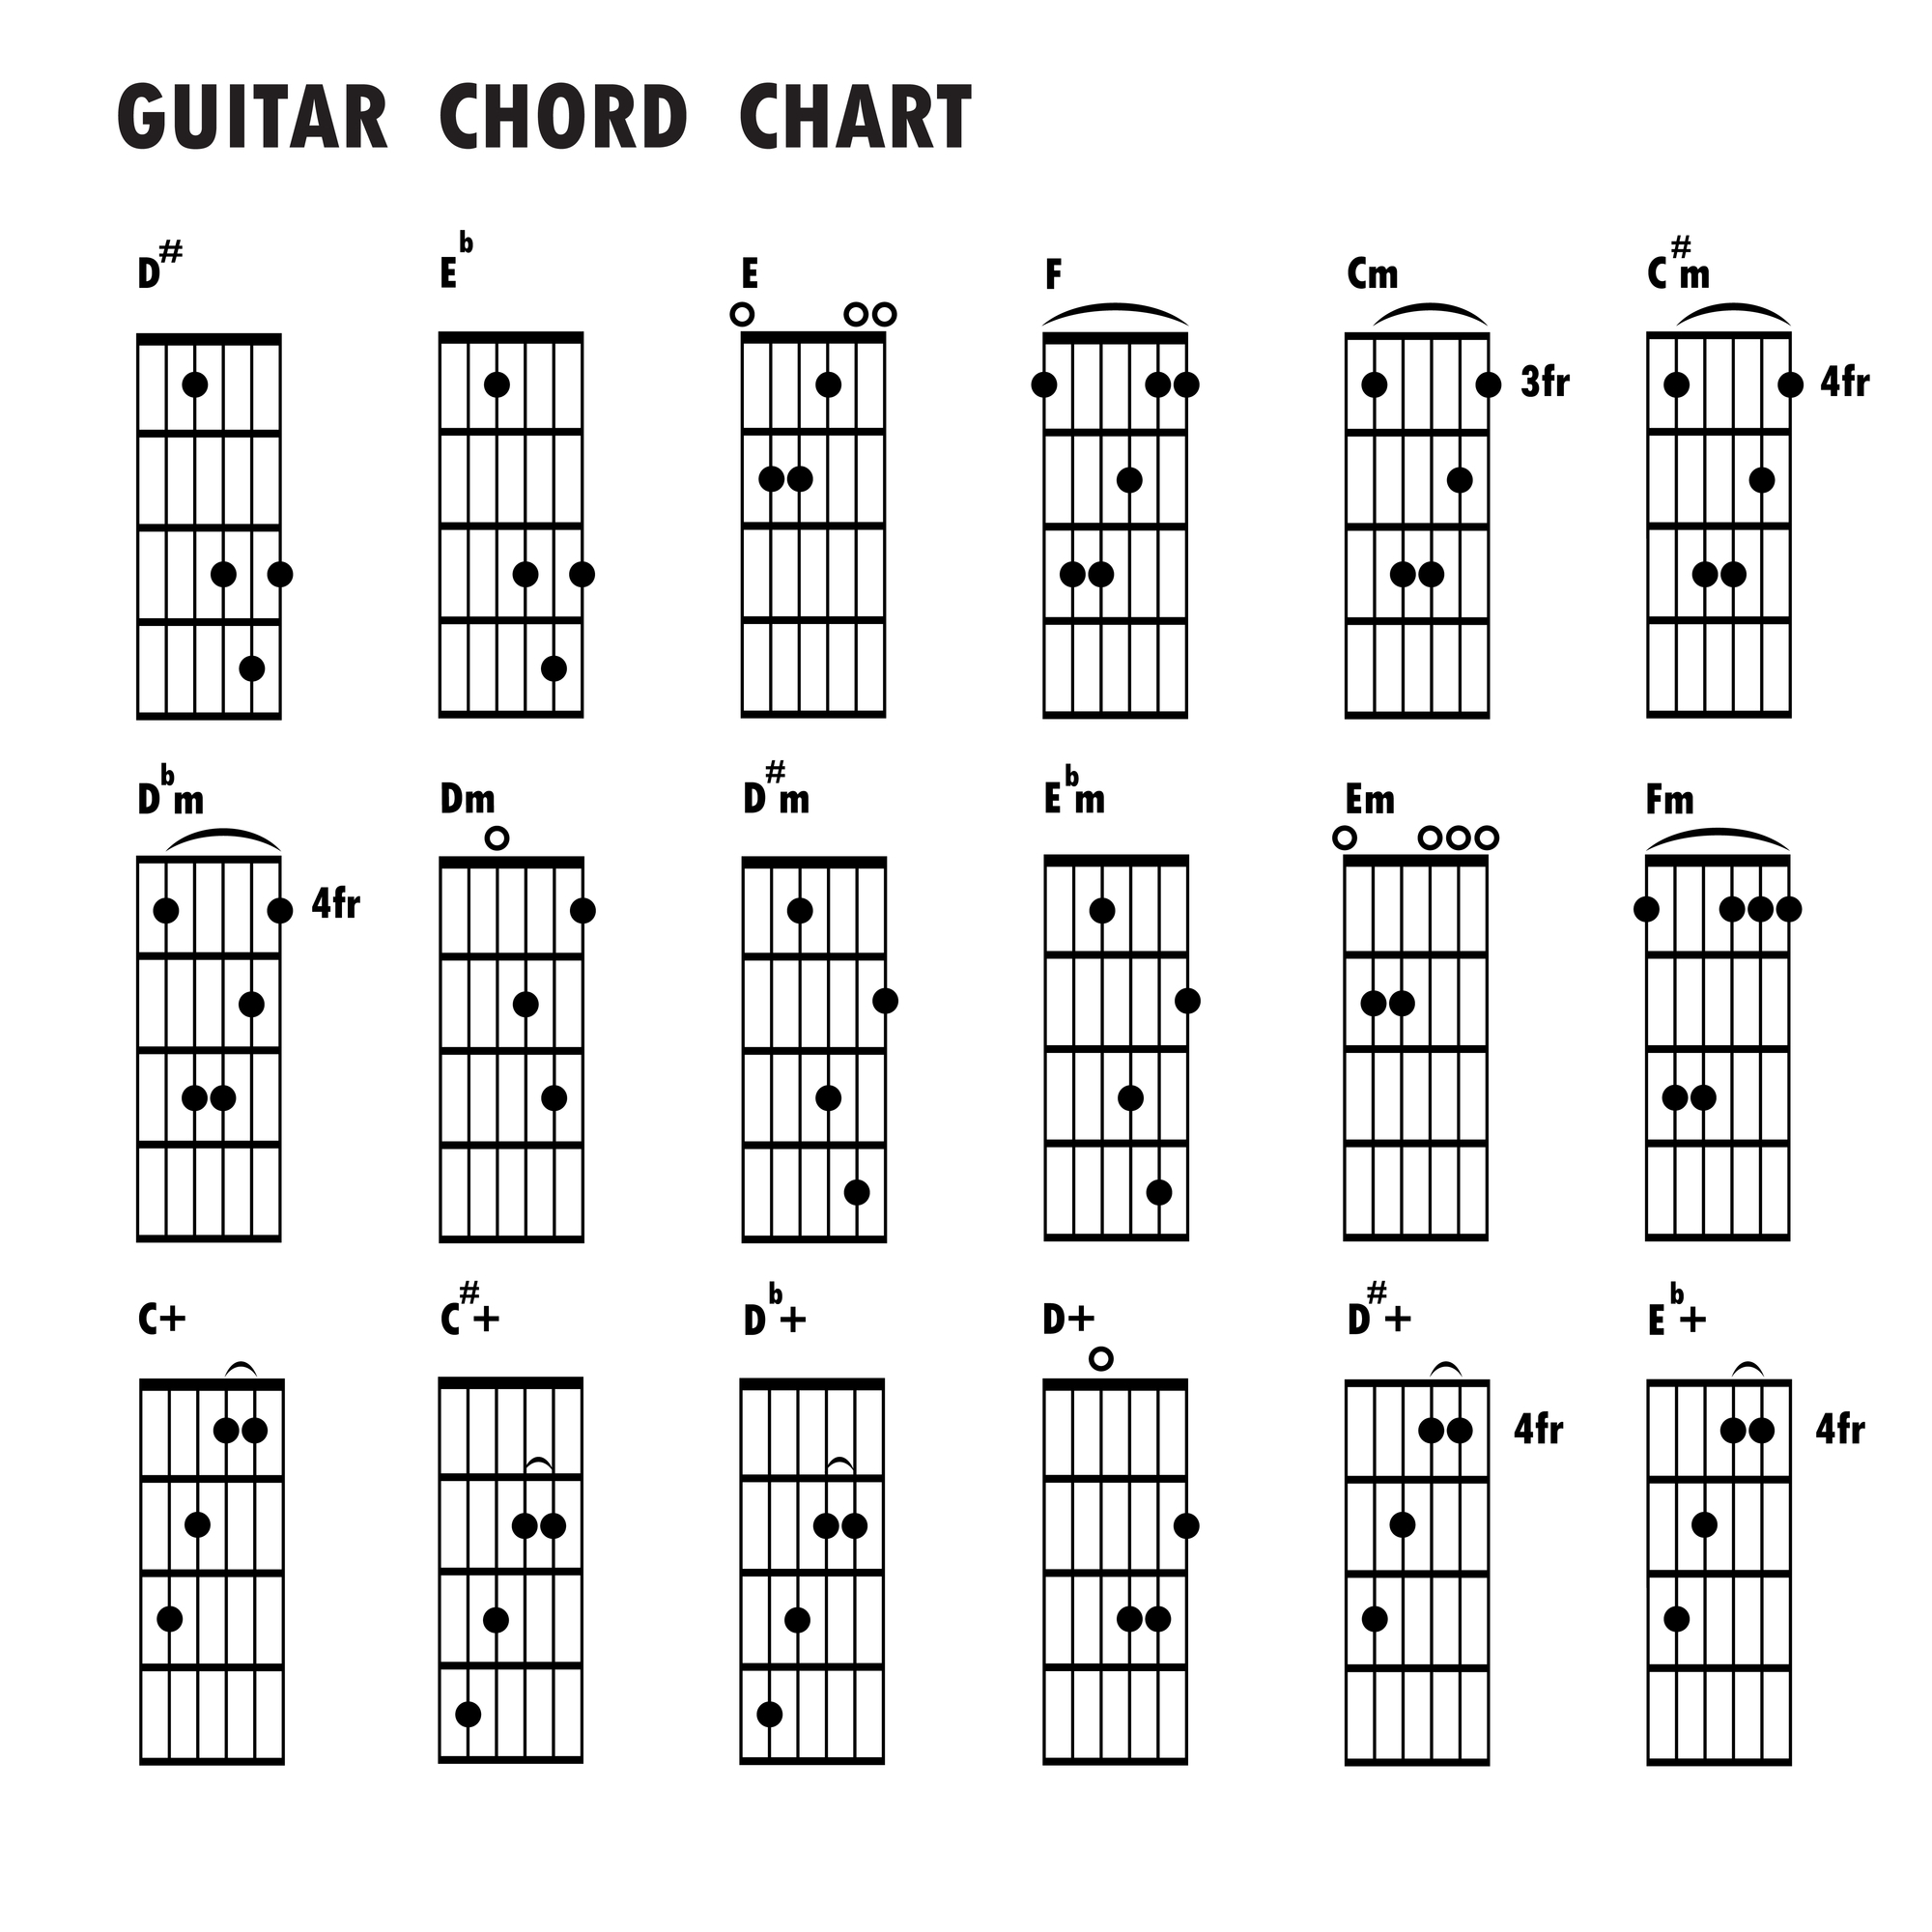 Guitar Chord Chart A Comprehensive Guide To Reading Guitar Chord Diagrams